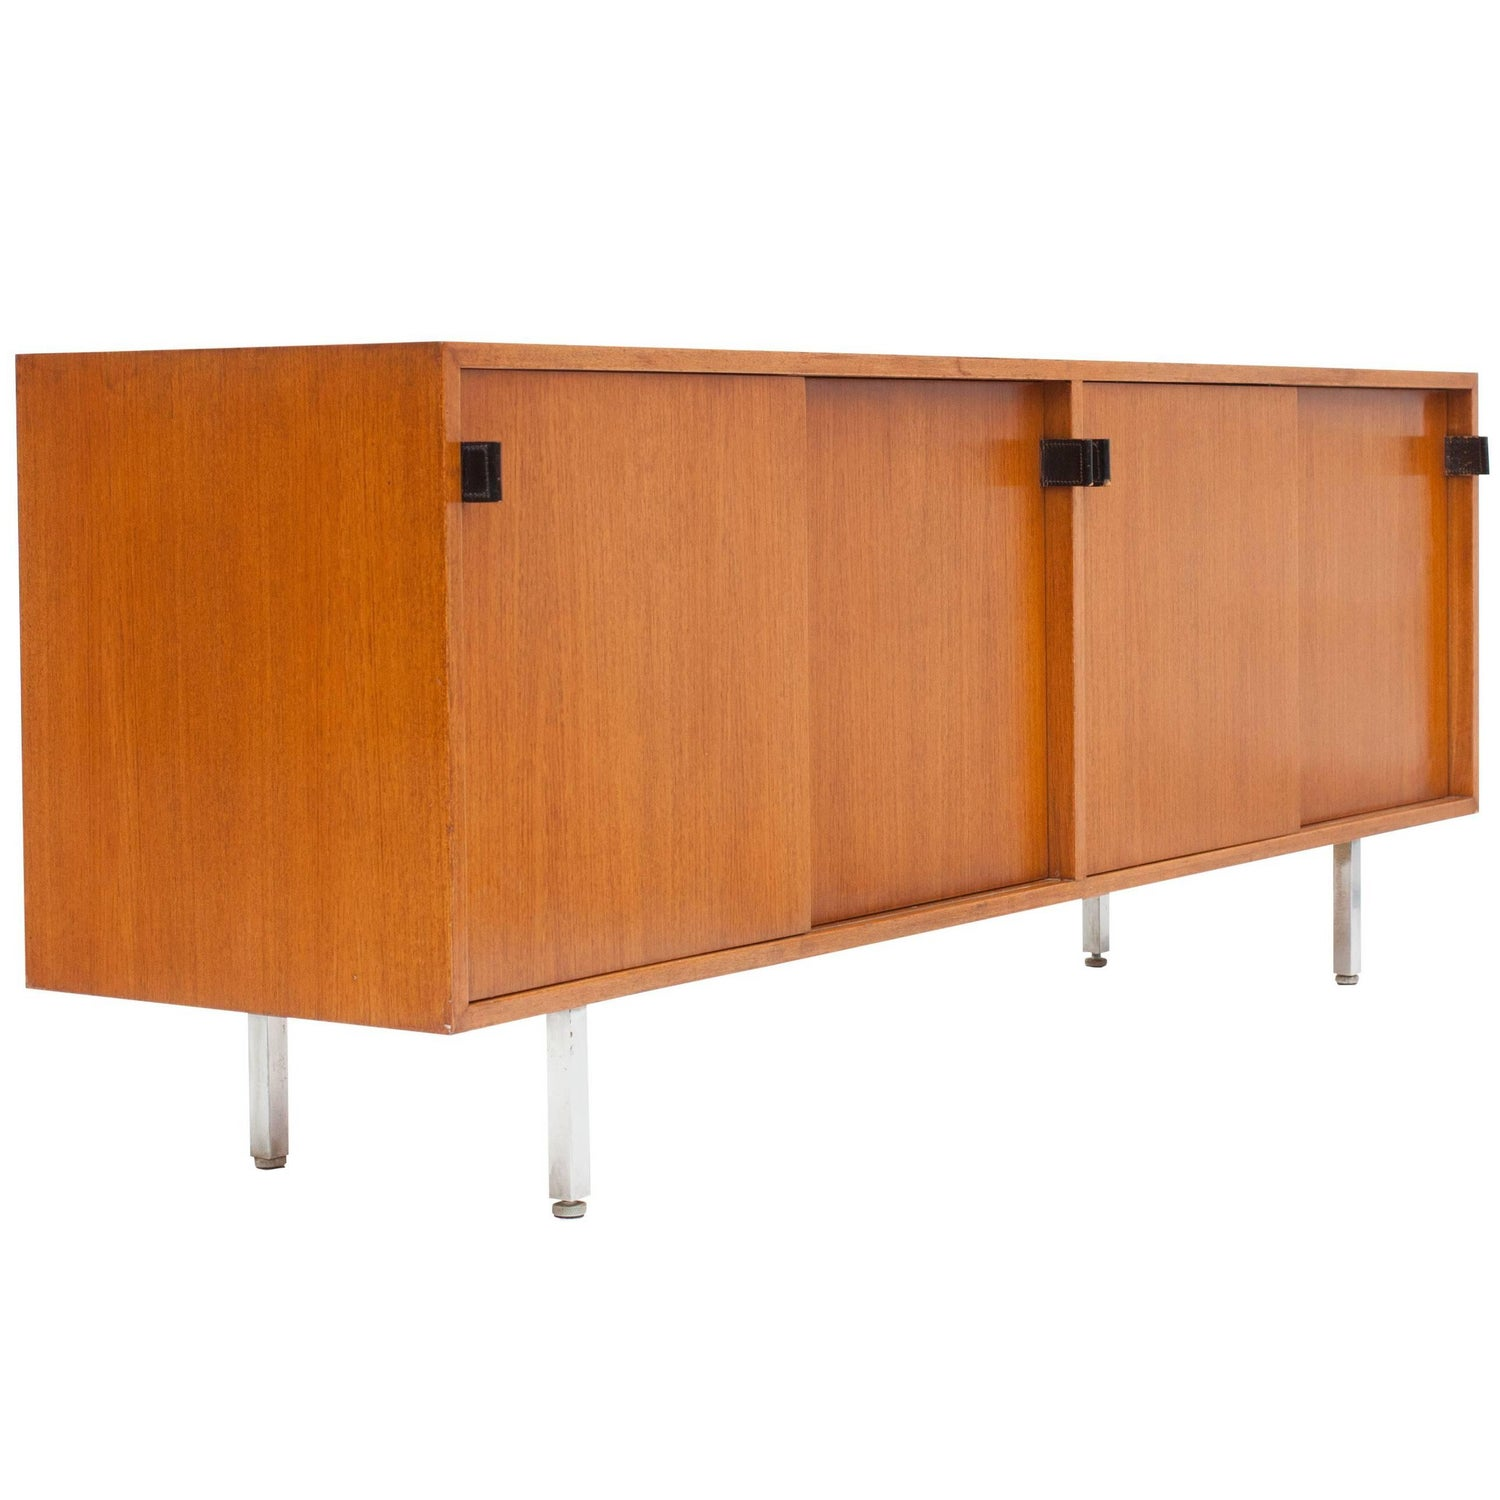 Modern Credenza in Teak by Florence Knoll, Manufactured by De Coene, 1950s